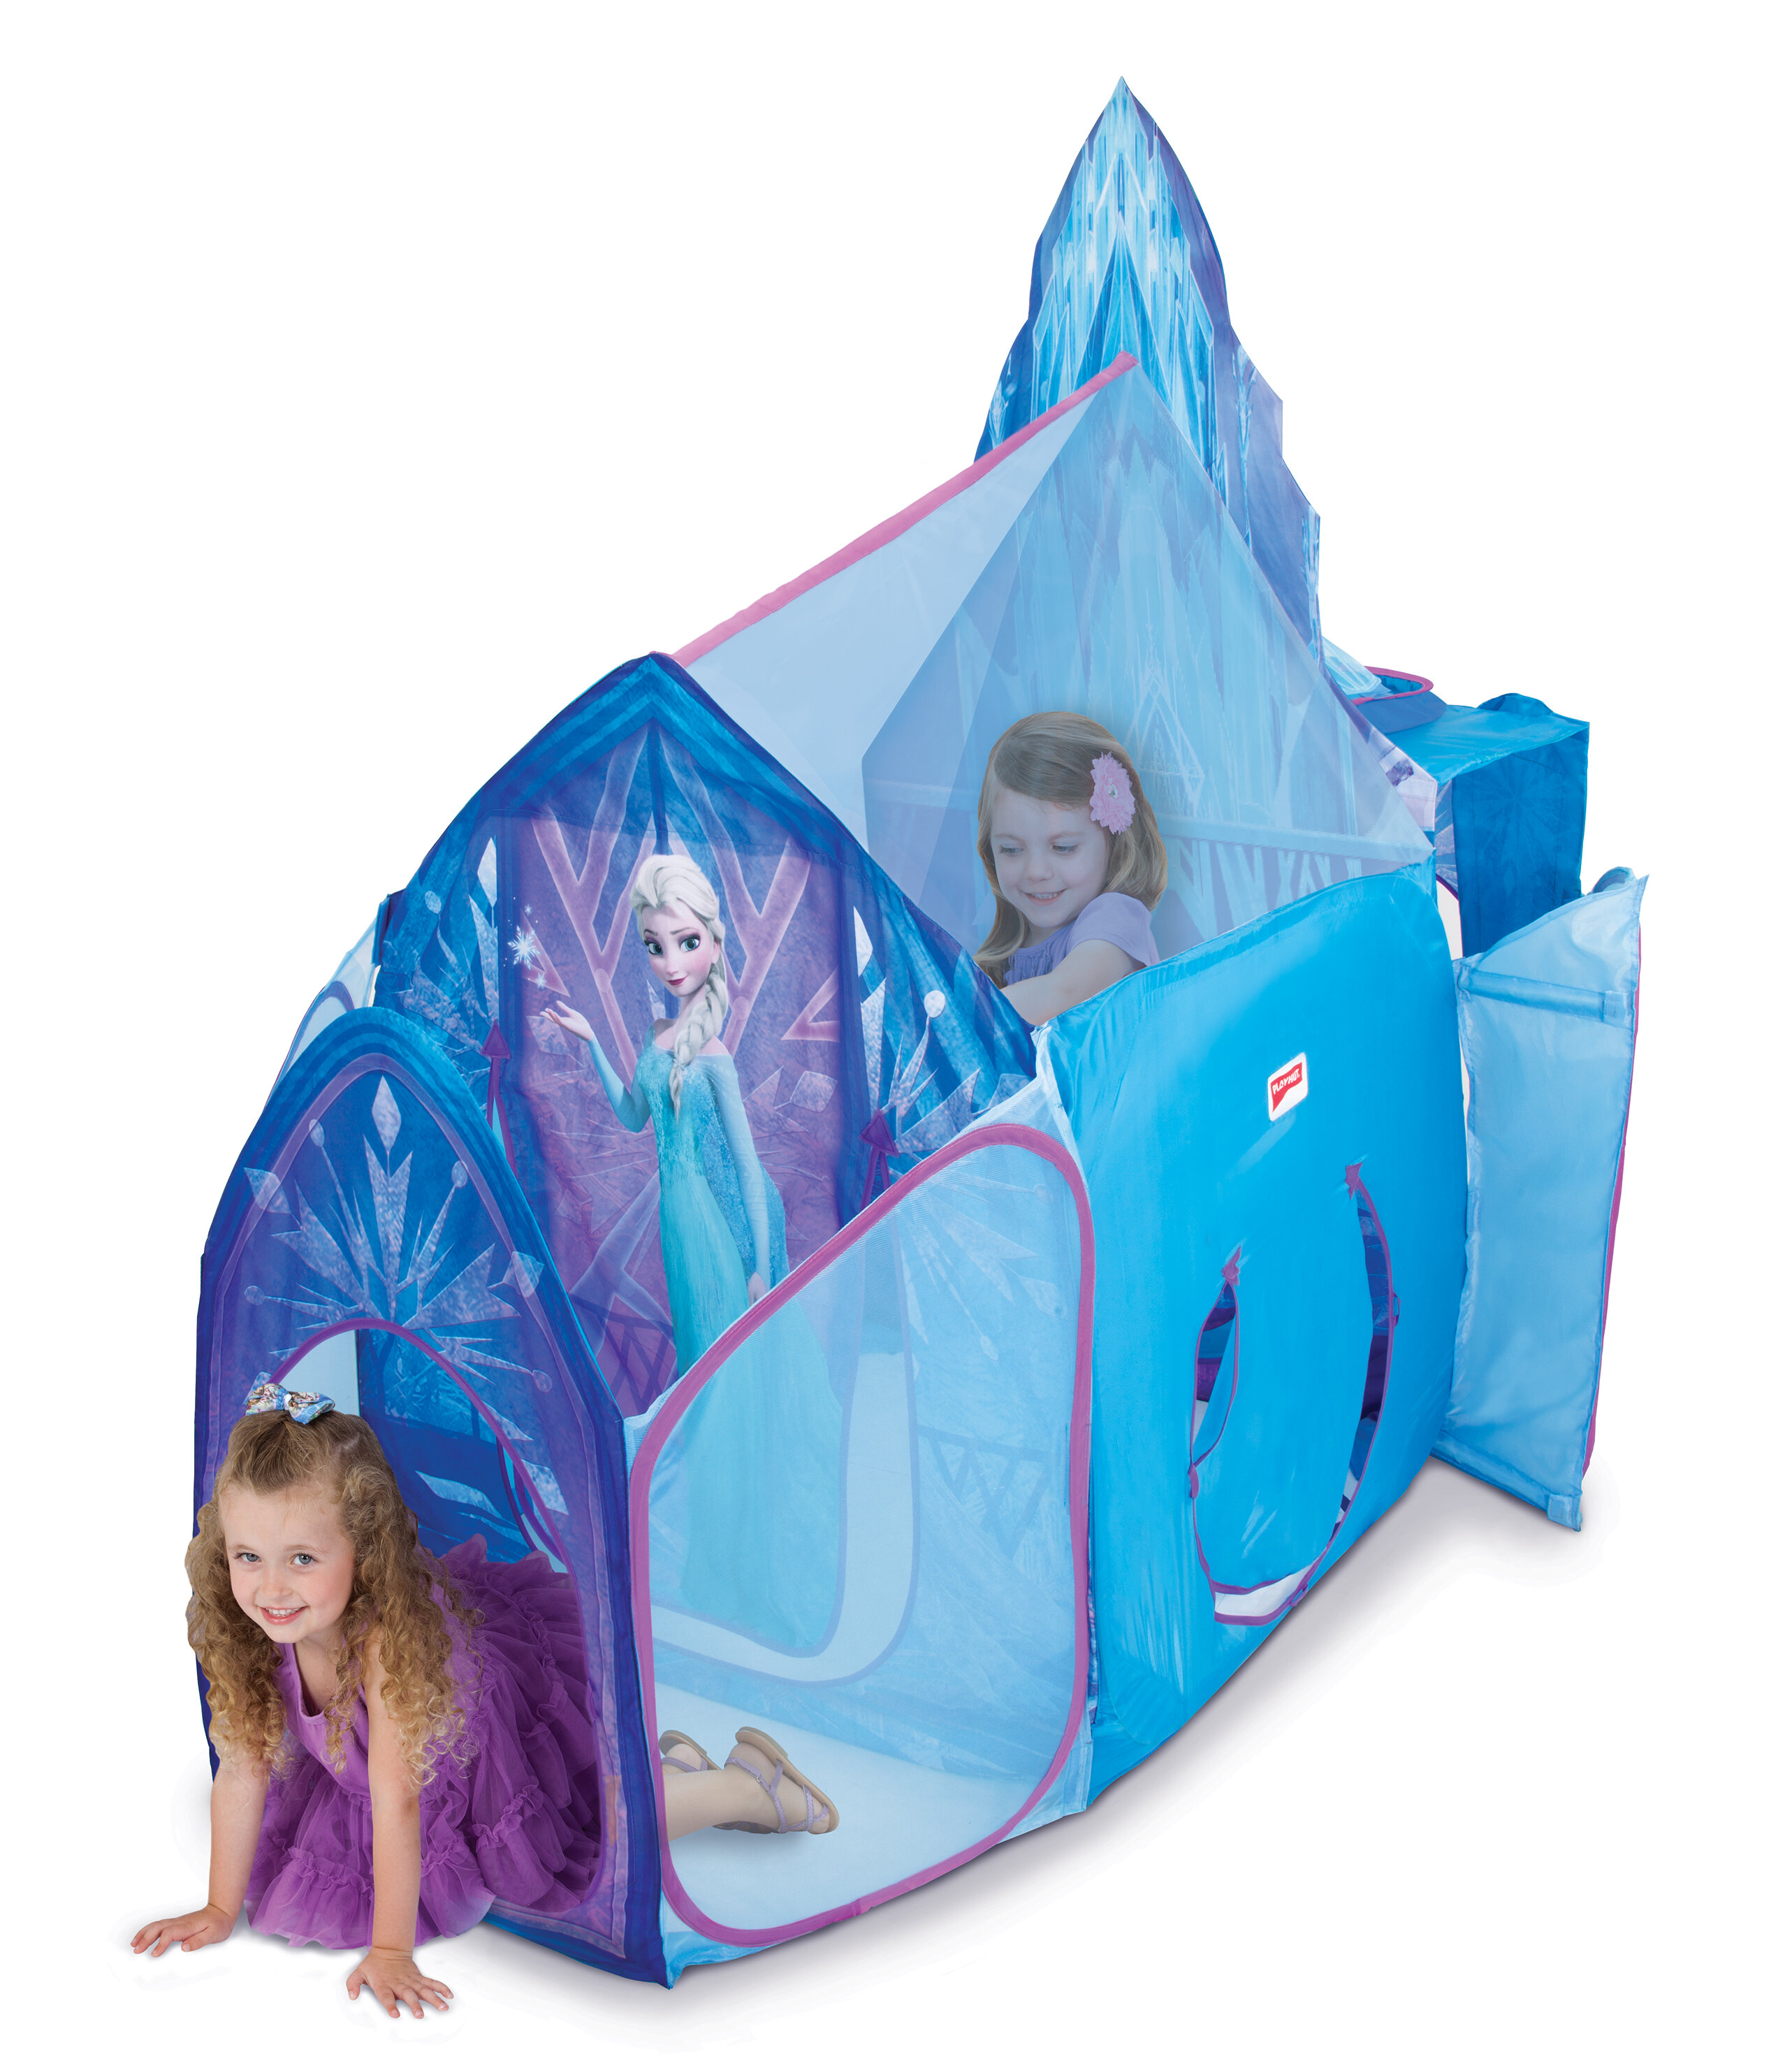 Playhut Disneyu0027s Frozen Elsau0027s Ice Castle Play Tent u0026 Reviews | Wayfair  sc 1 st  Wayfair & Playhut Disneyu0027s Frozen Elsau0027s Ice Castle Play Tent u0026 Reviews ...